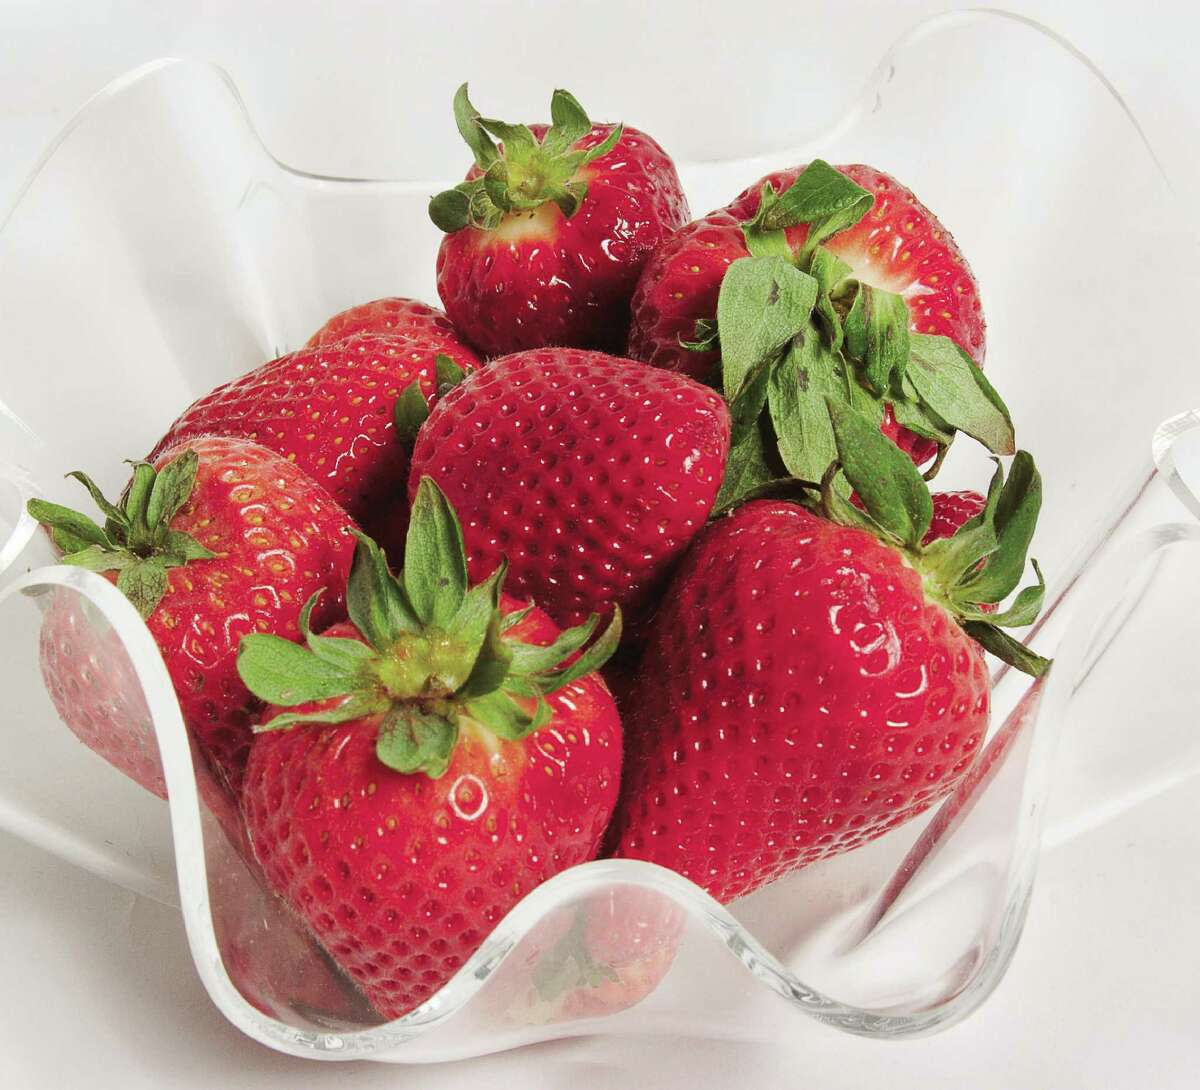 Strawberries are a vibrant and versatile ingredient.